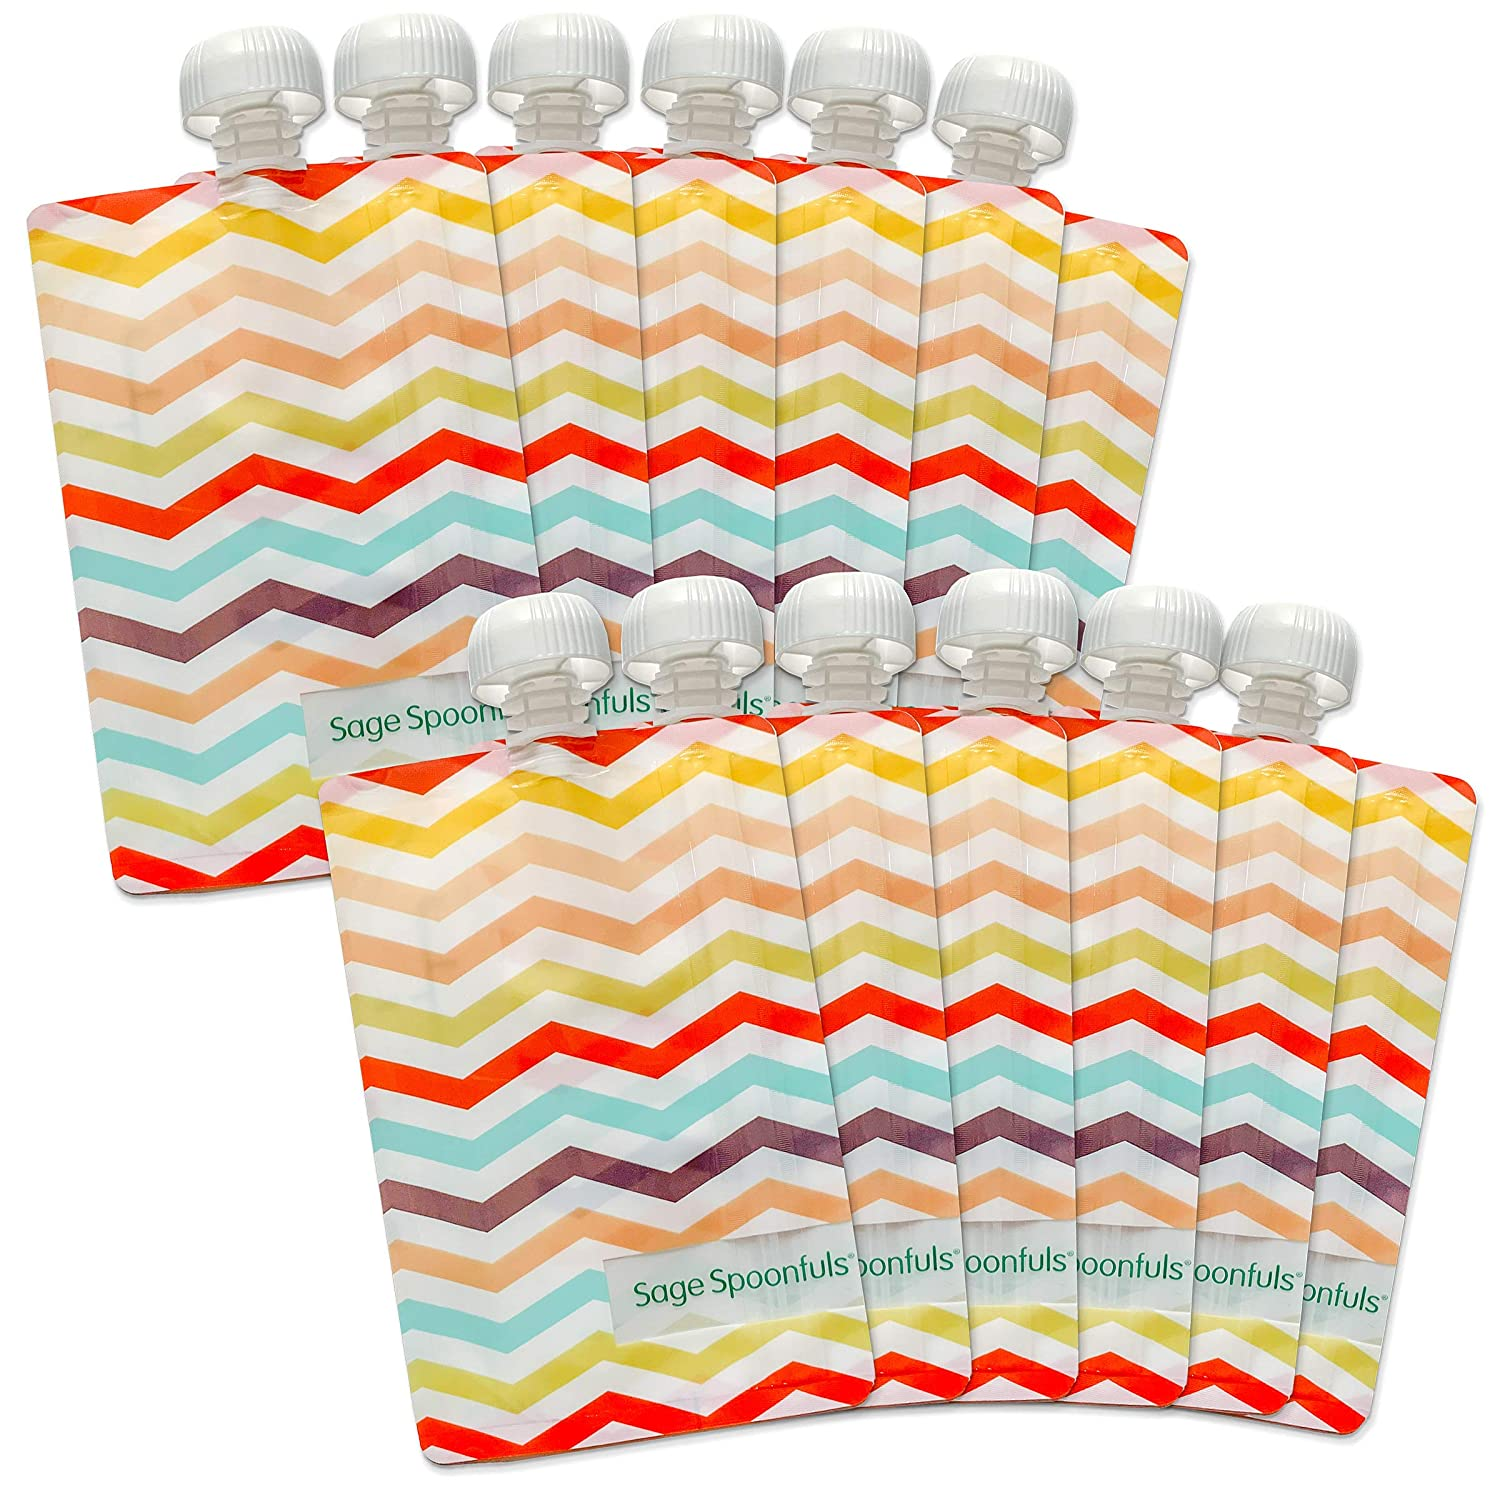 Sage Spoonfuls Squeezie Reusable Baby Food Pouches - 12-Pack of 7-Ounce Leakproof, Easy-to-Fill Pouches - Chevron - Dishwasher Safe, BPA and Lead-Free